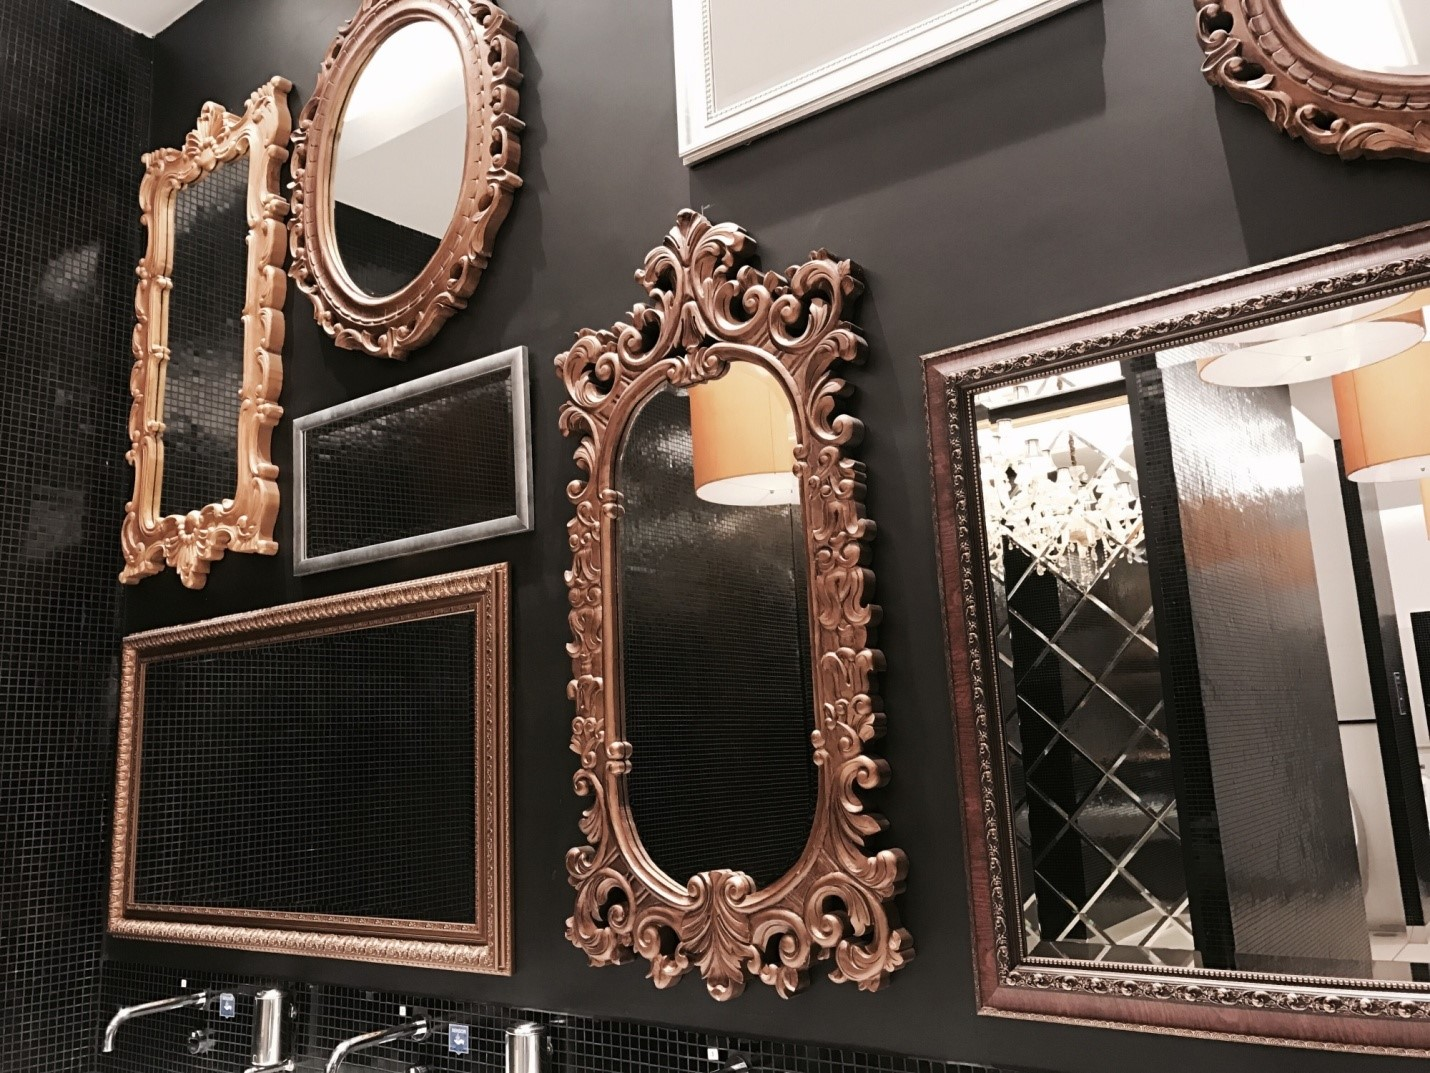 How Do I Choose the Best Wall Mirror for My New Apartment?